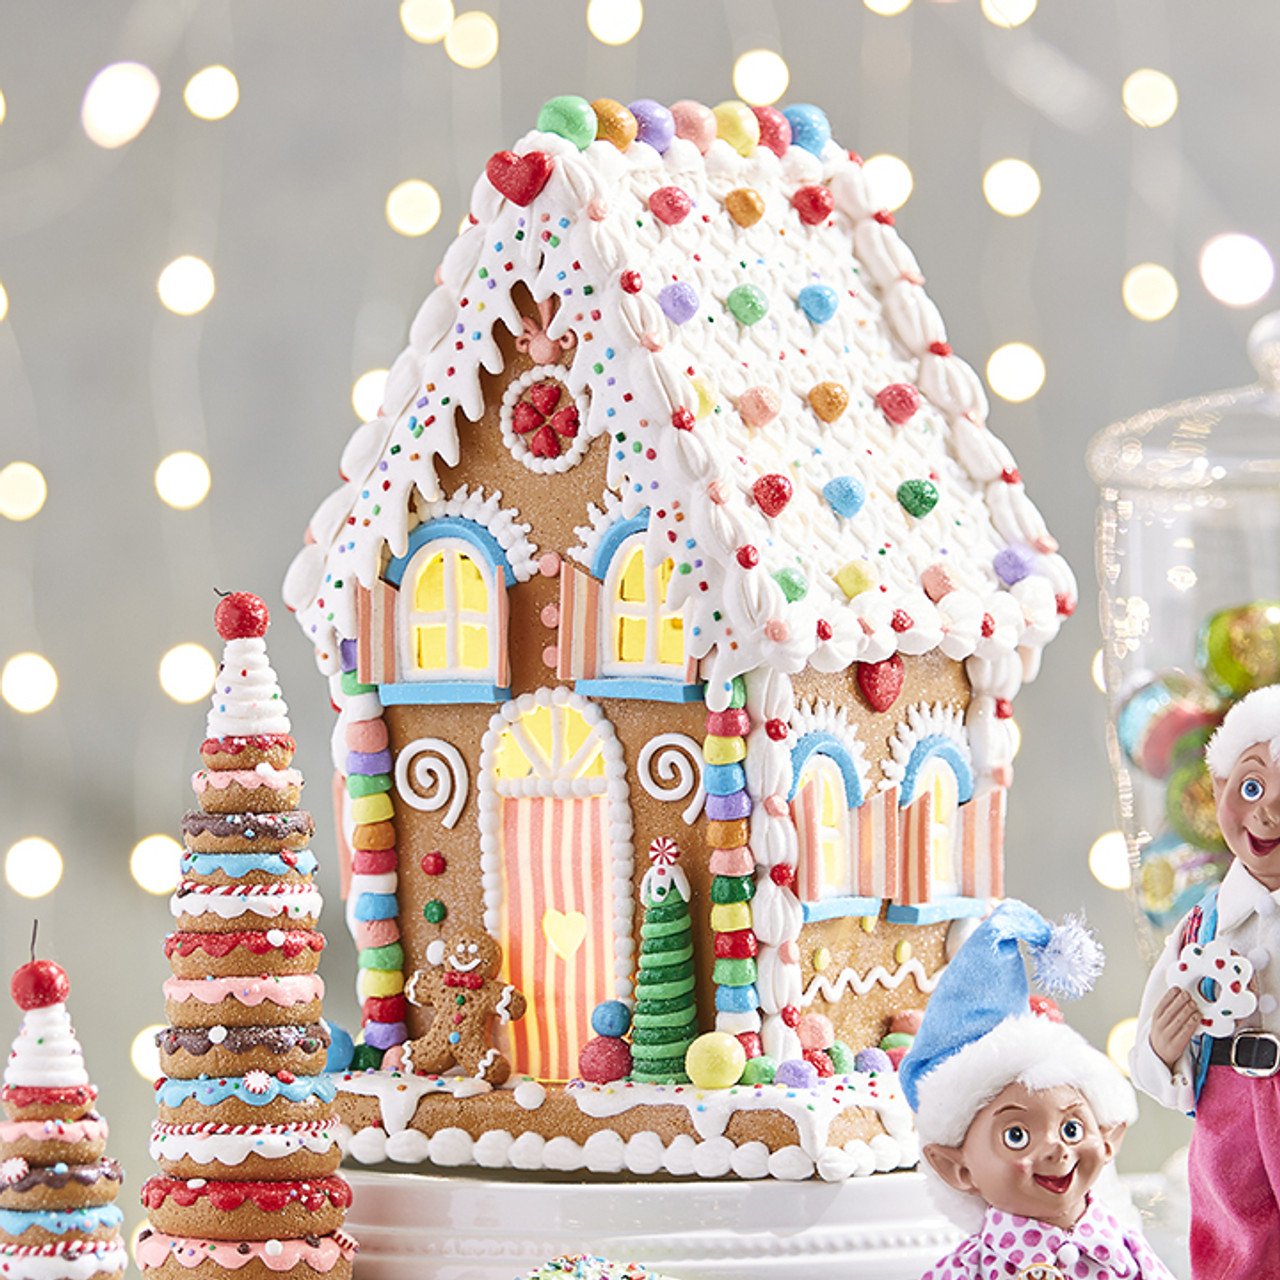 """House Decorating Christmas: Raz 14"""" LED Lighted Claydough Pastel Colored Gingerbread"""